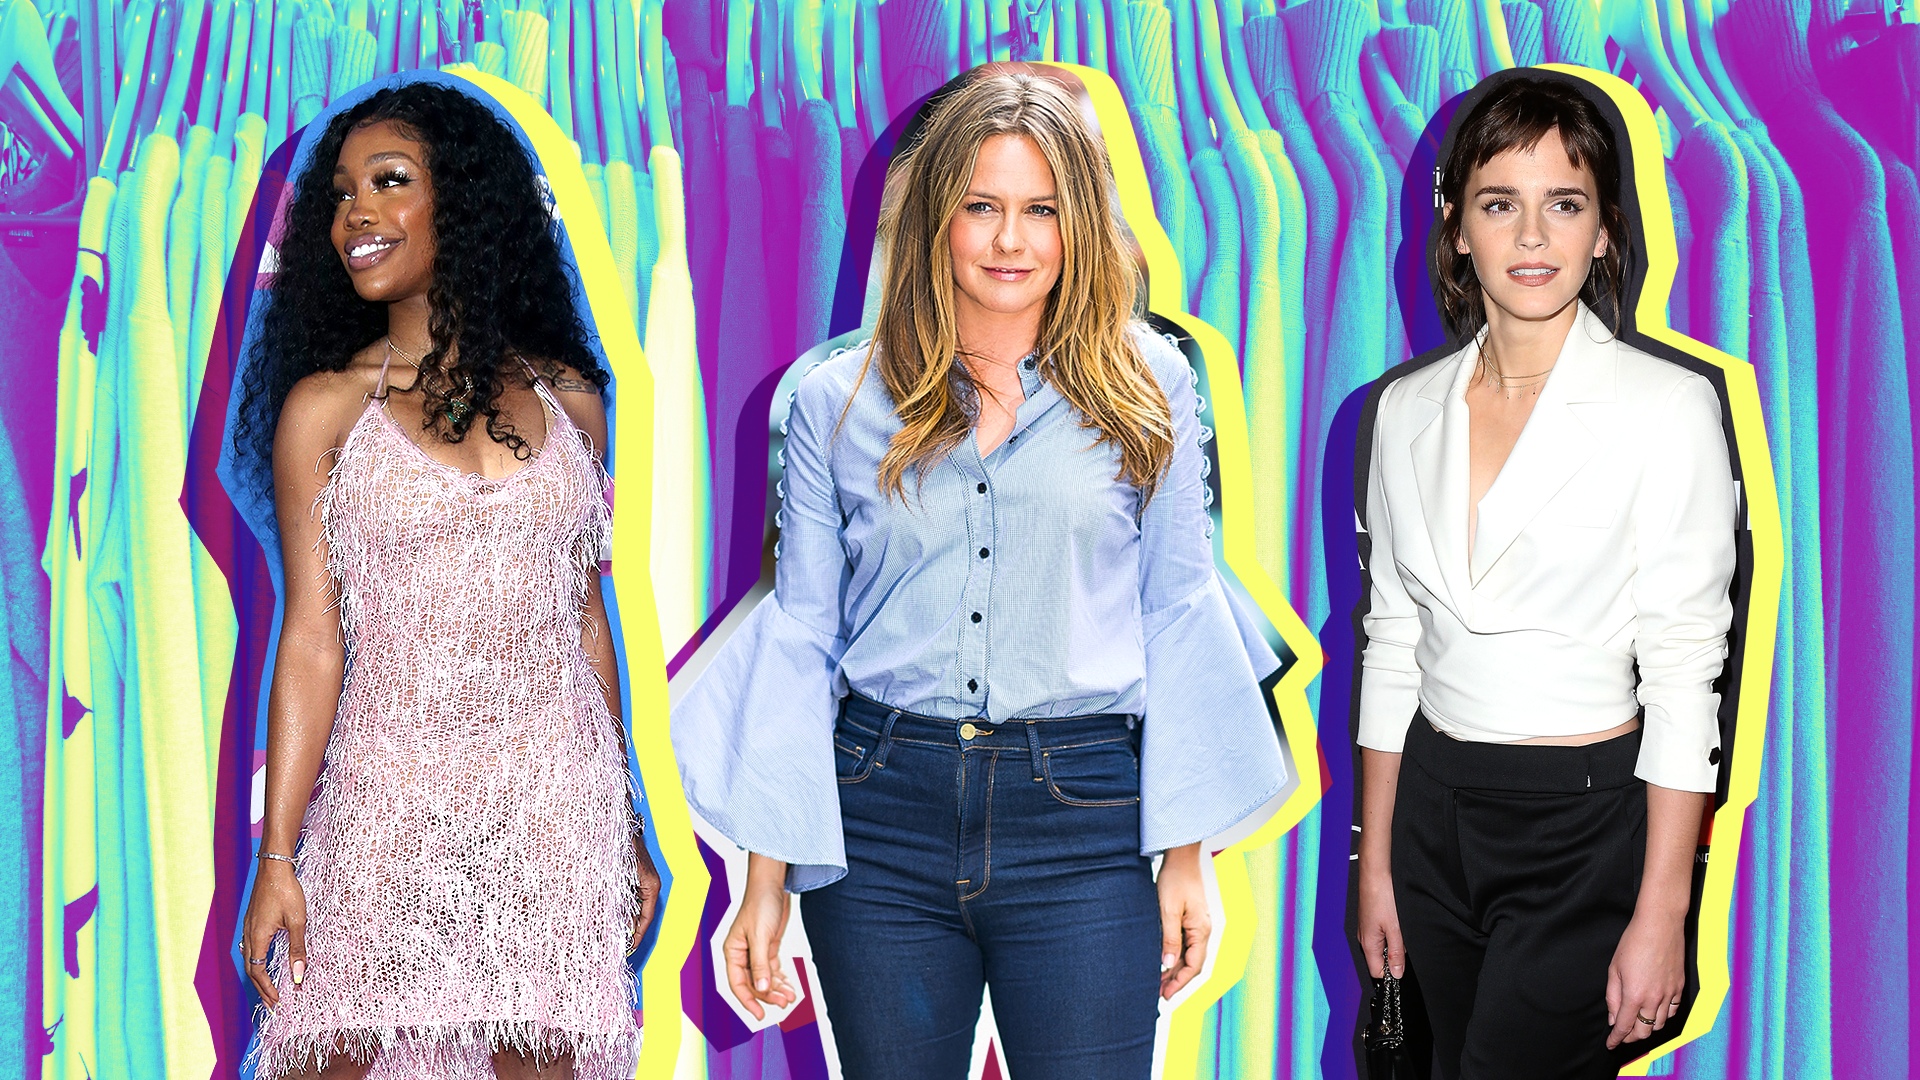 Celebs Calling for Vegan, Sustainable Fashion